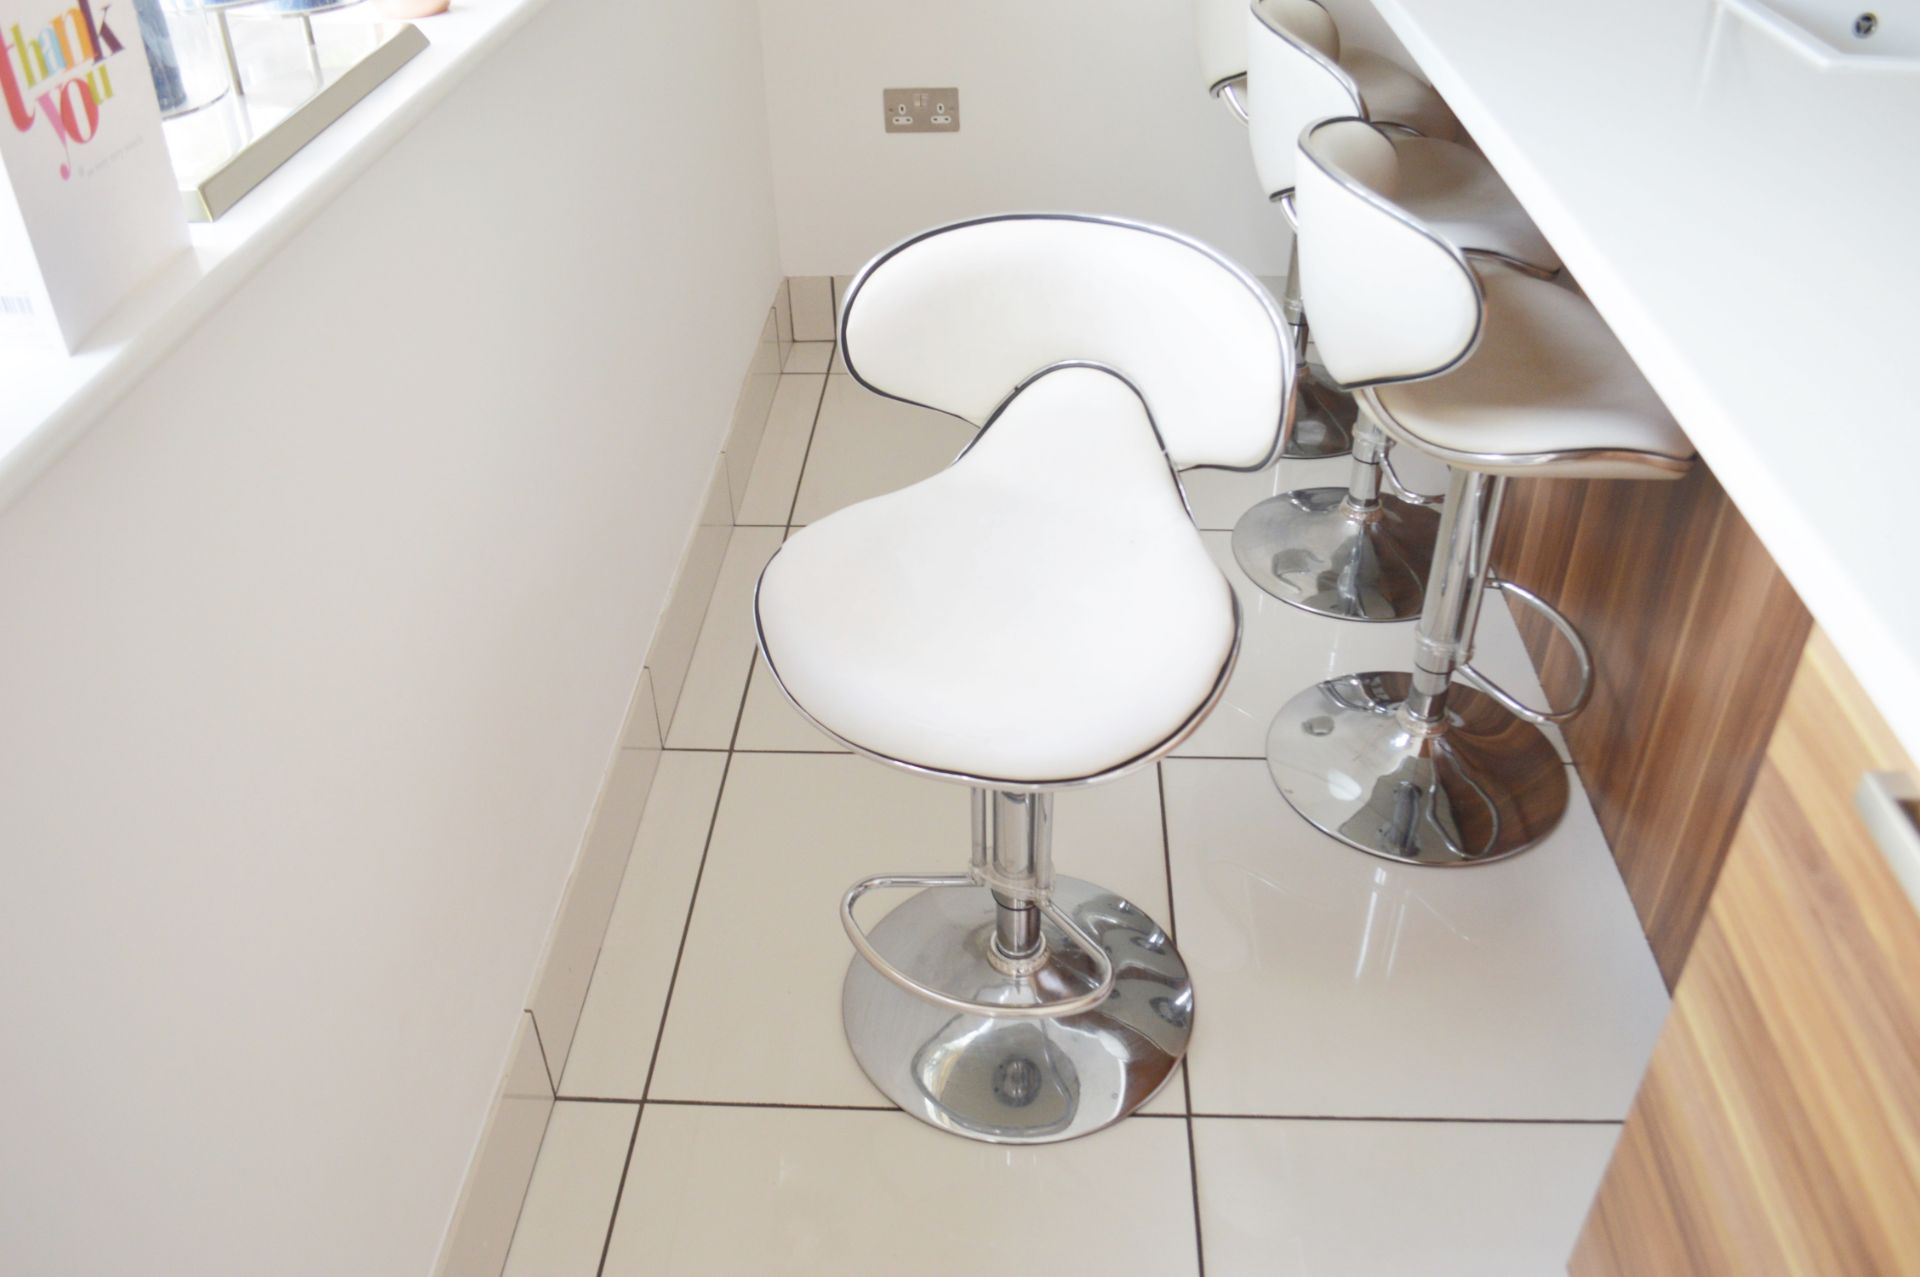 4 x Deluxe Modern White Bar Stools -CL685 - Location: Blackburn BB6 - NO VAT On Hammer This Lot - Image 4 of 4